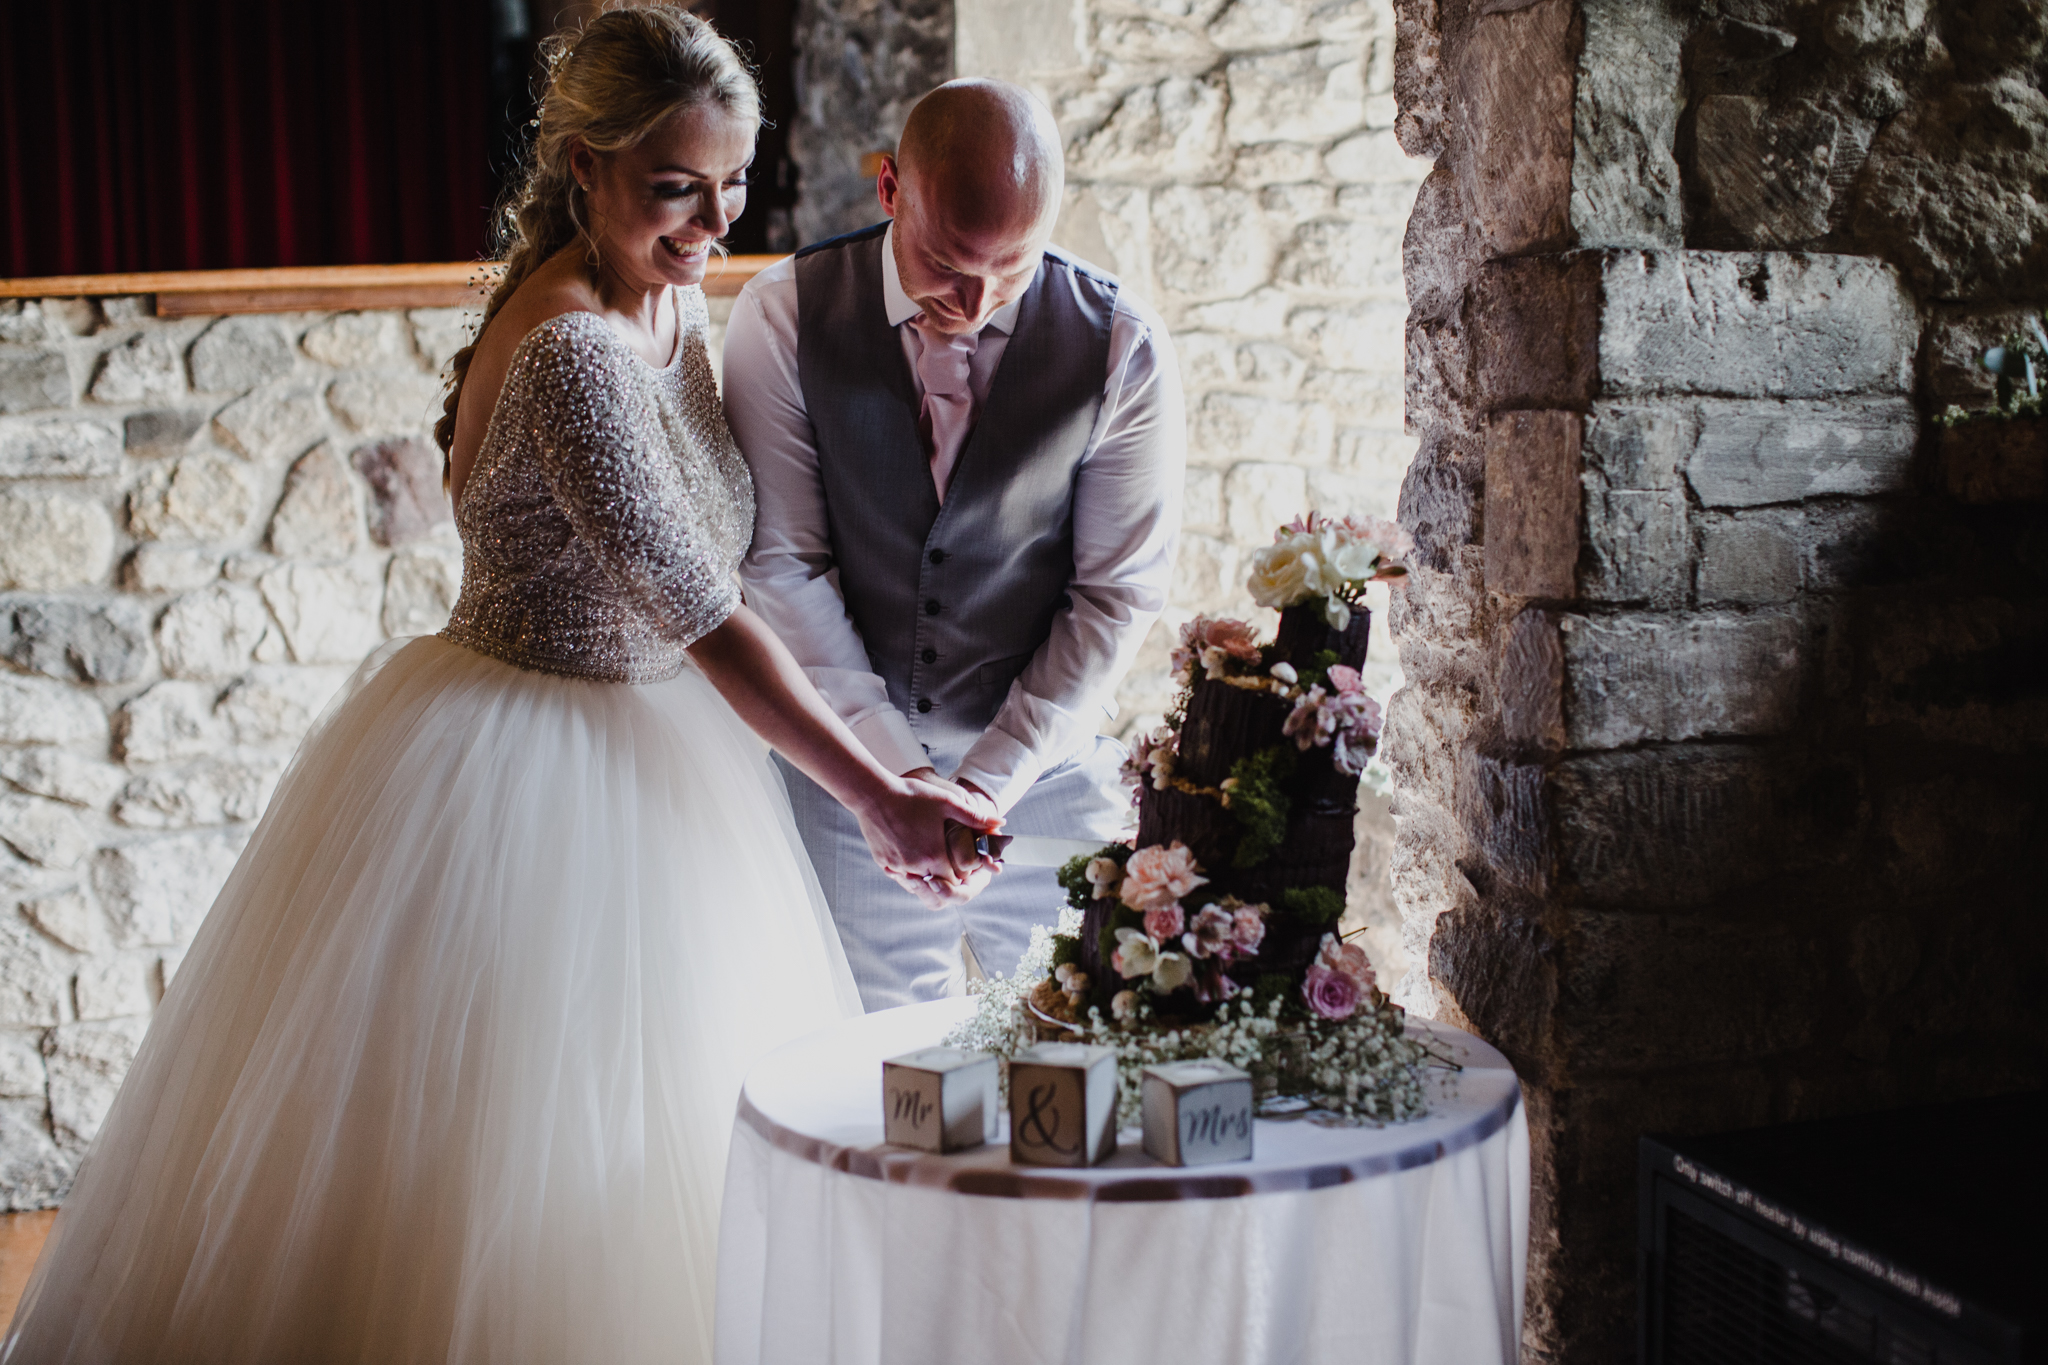 bride and groom cutting cake in window light